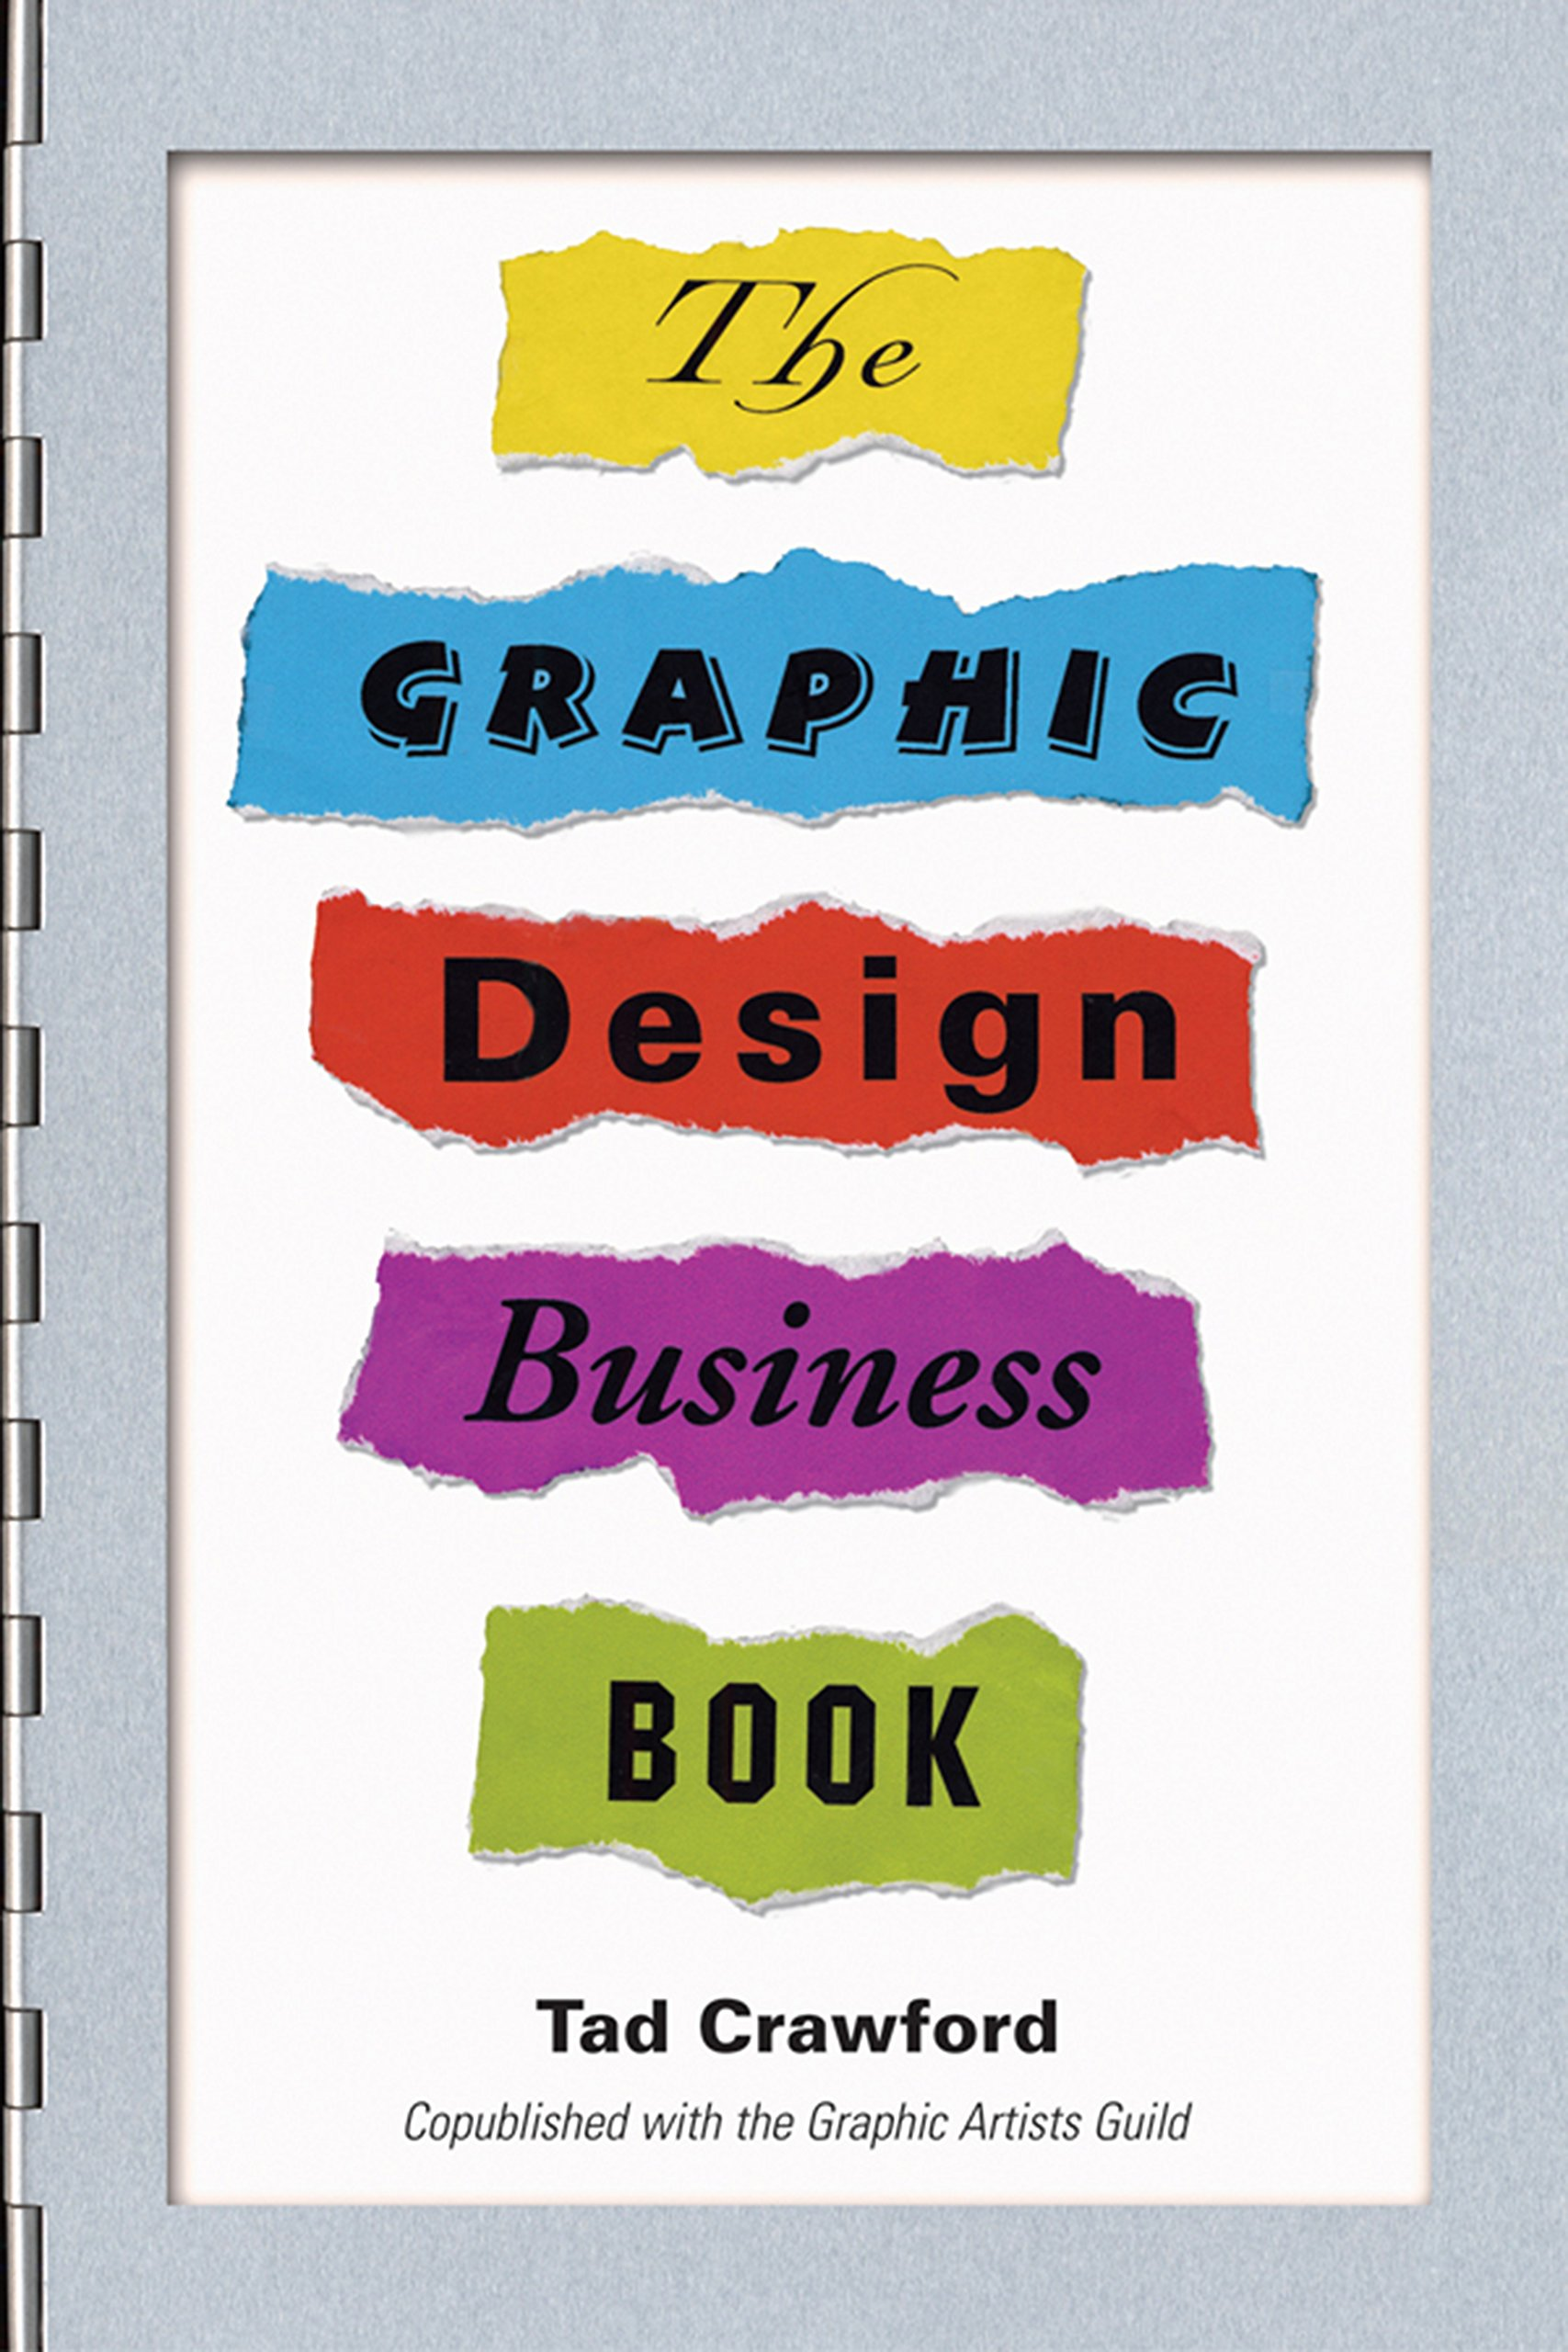 The Graphic Design Business Book by Allworth Press